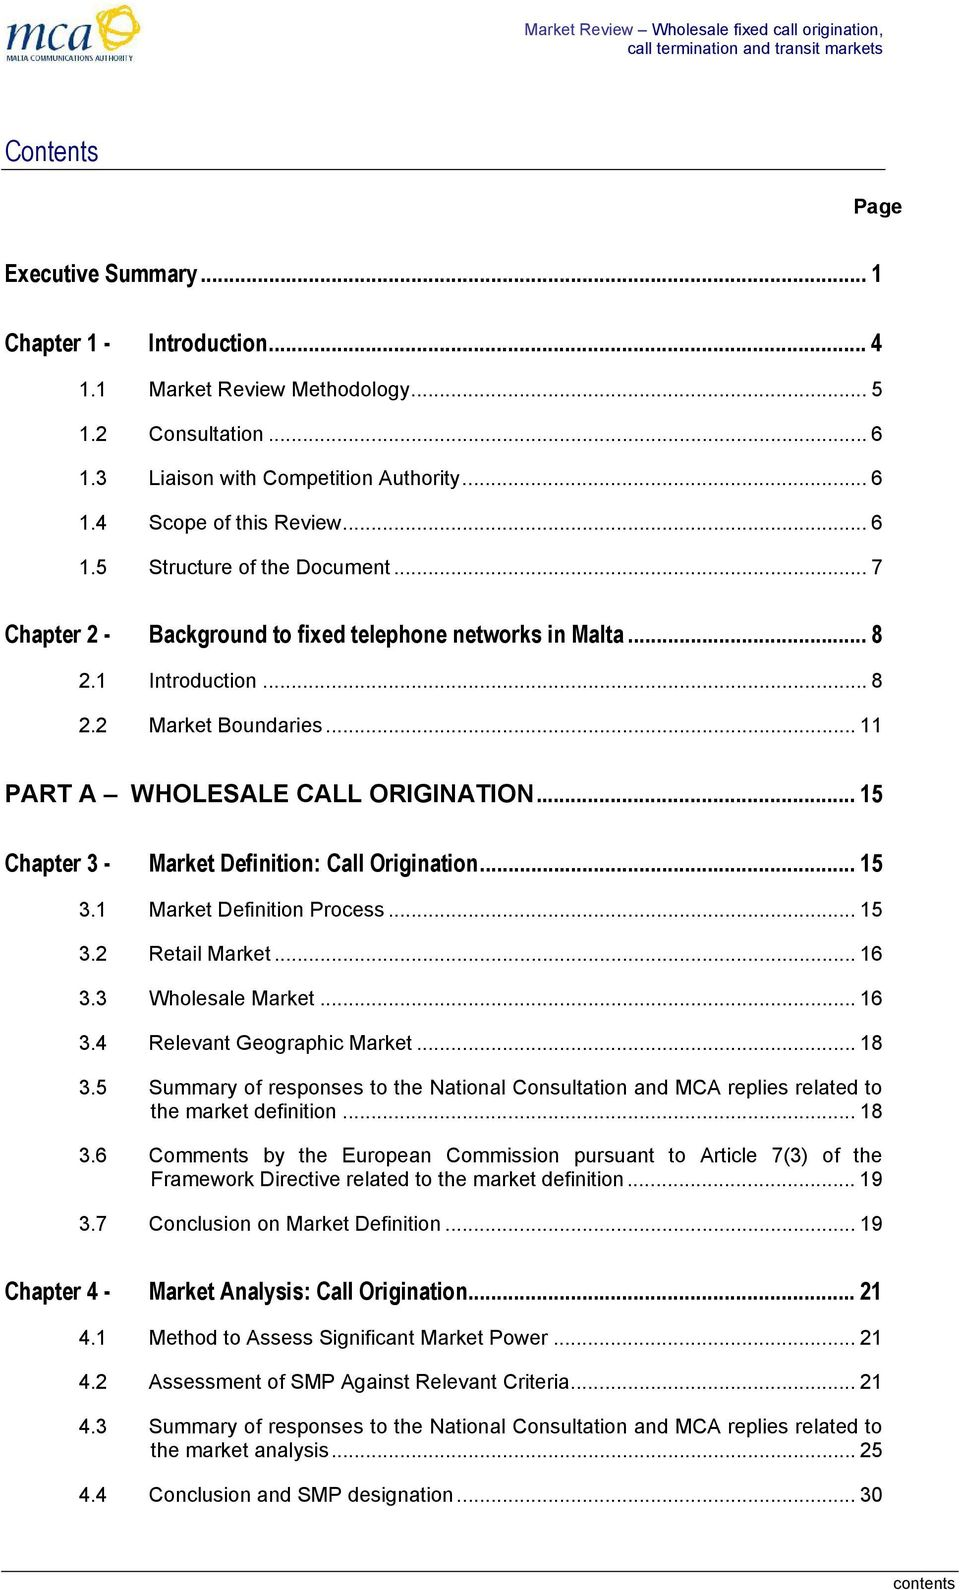 .. 15 Chapter 3 - Market Definition: Call Origination... 15 3.1 Market Definition Process... 15 3.2 Retail Market... 16 3.3 Wholesale Market... 16 3.4 Relevant Geographic Market... 18 3.